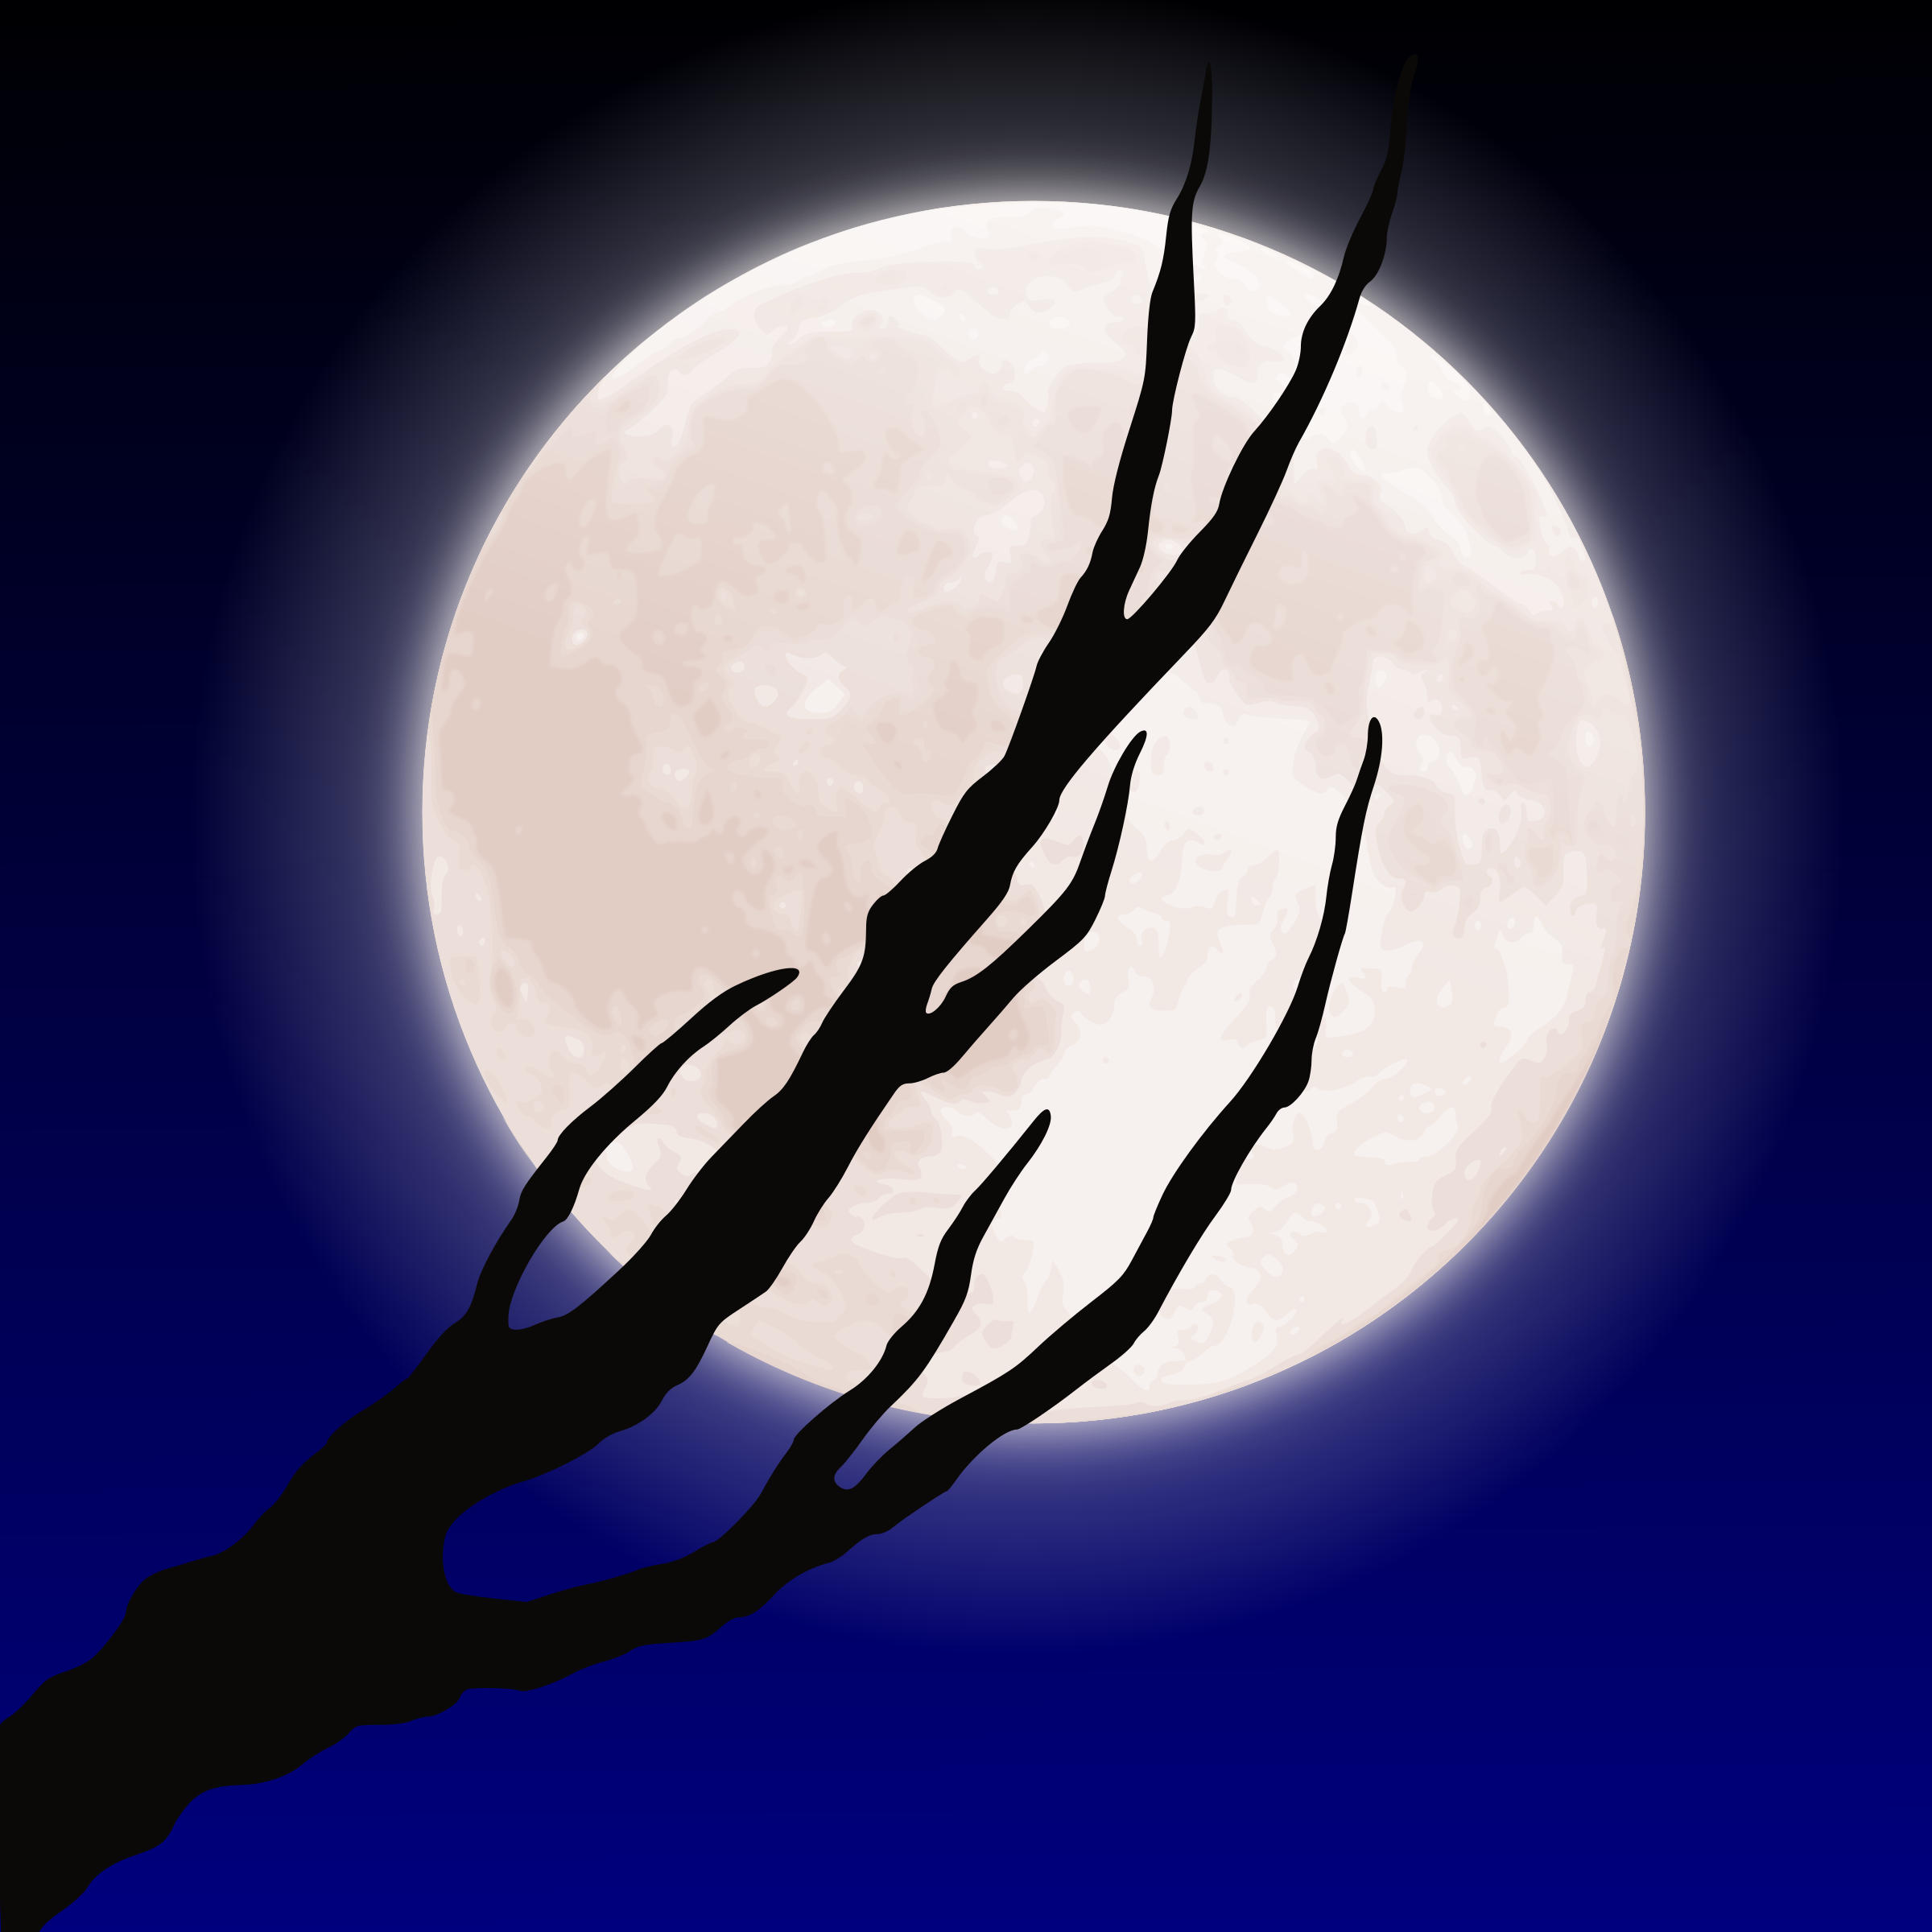 Moon and branch by liftarn